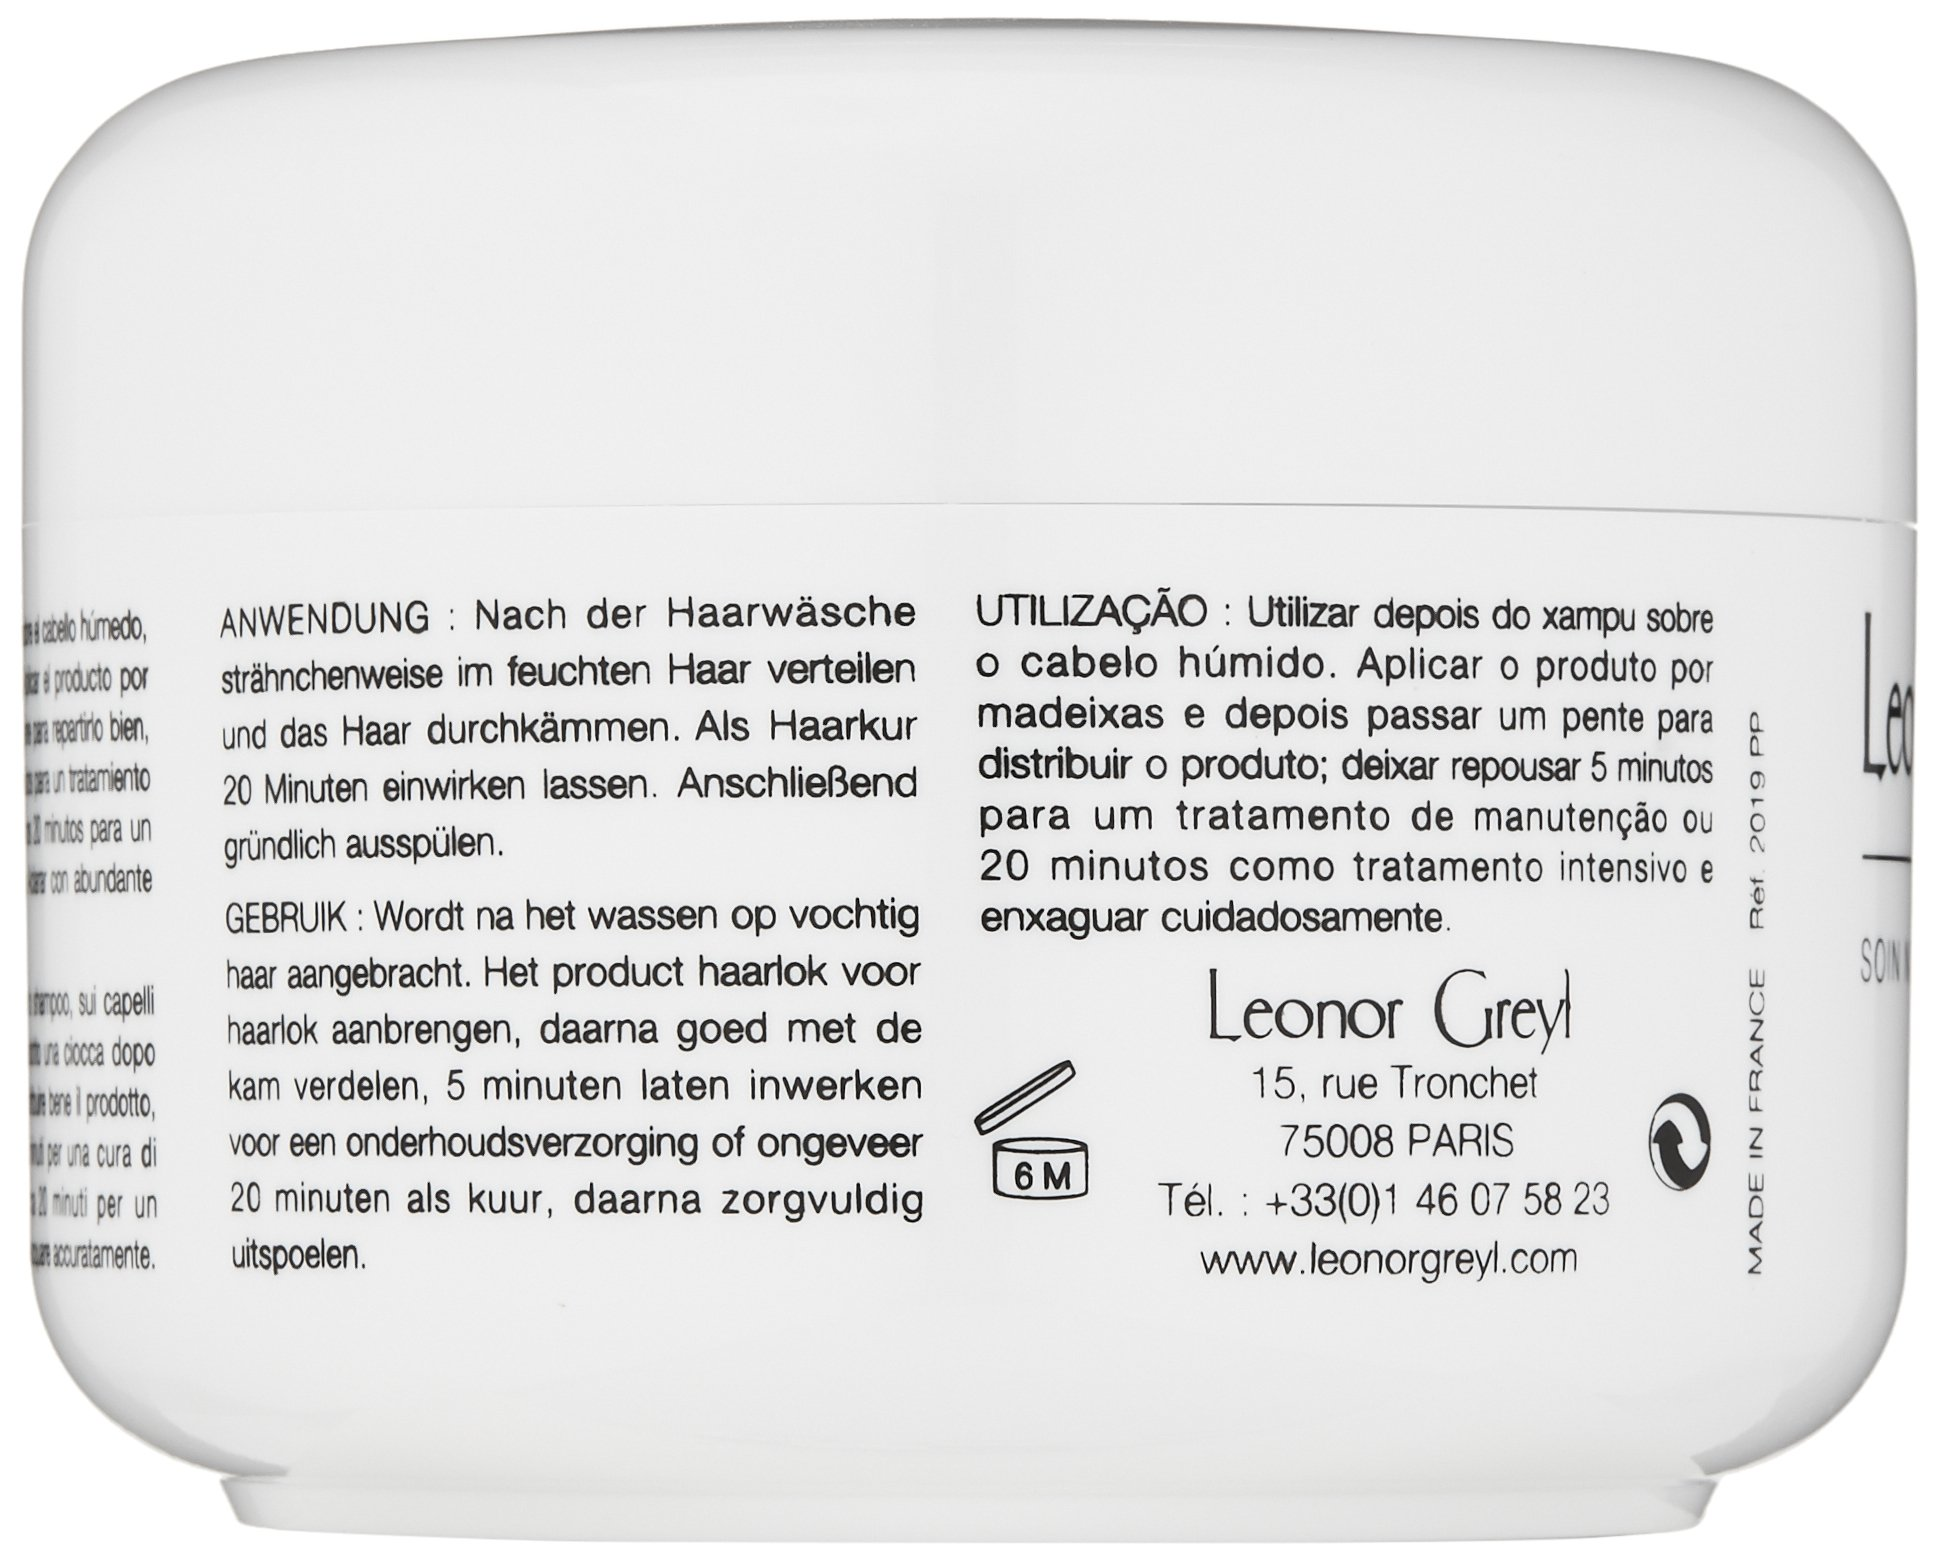 Leonor Greyl Paris Masque A L'Orchidee - Deep Conditioning Mask for Dry, Thick or Frizzy Hair, 7 oz. by Leonor Greyl Paris (Image #6)